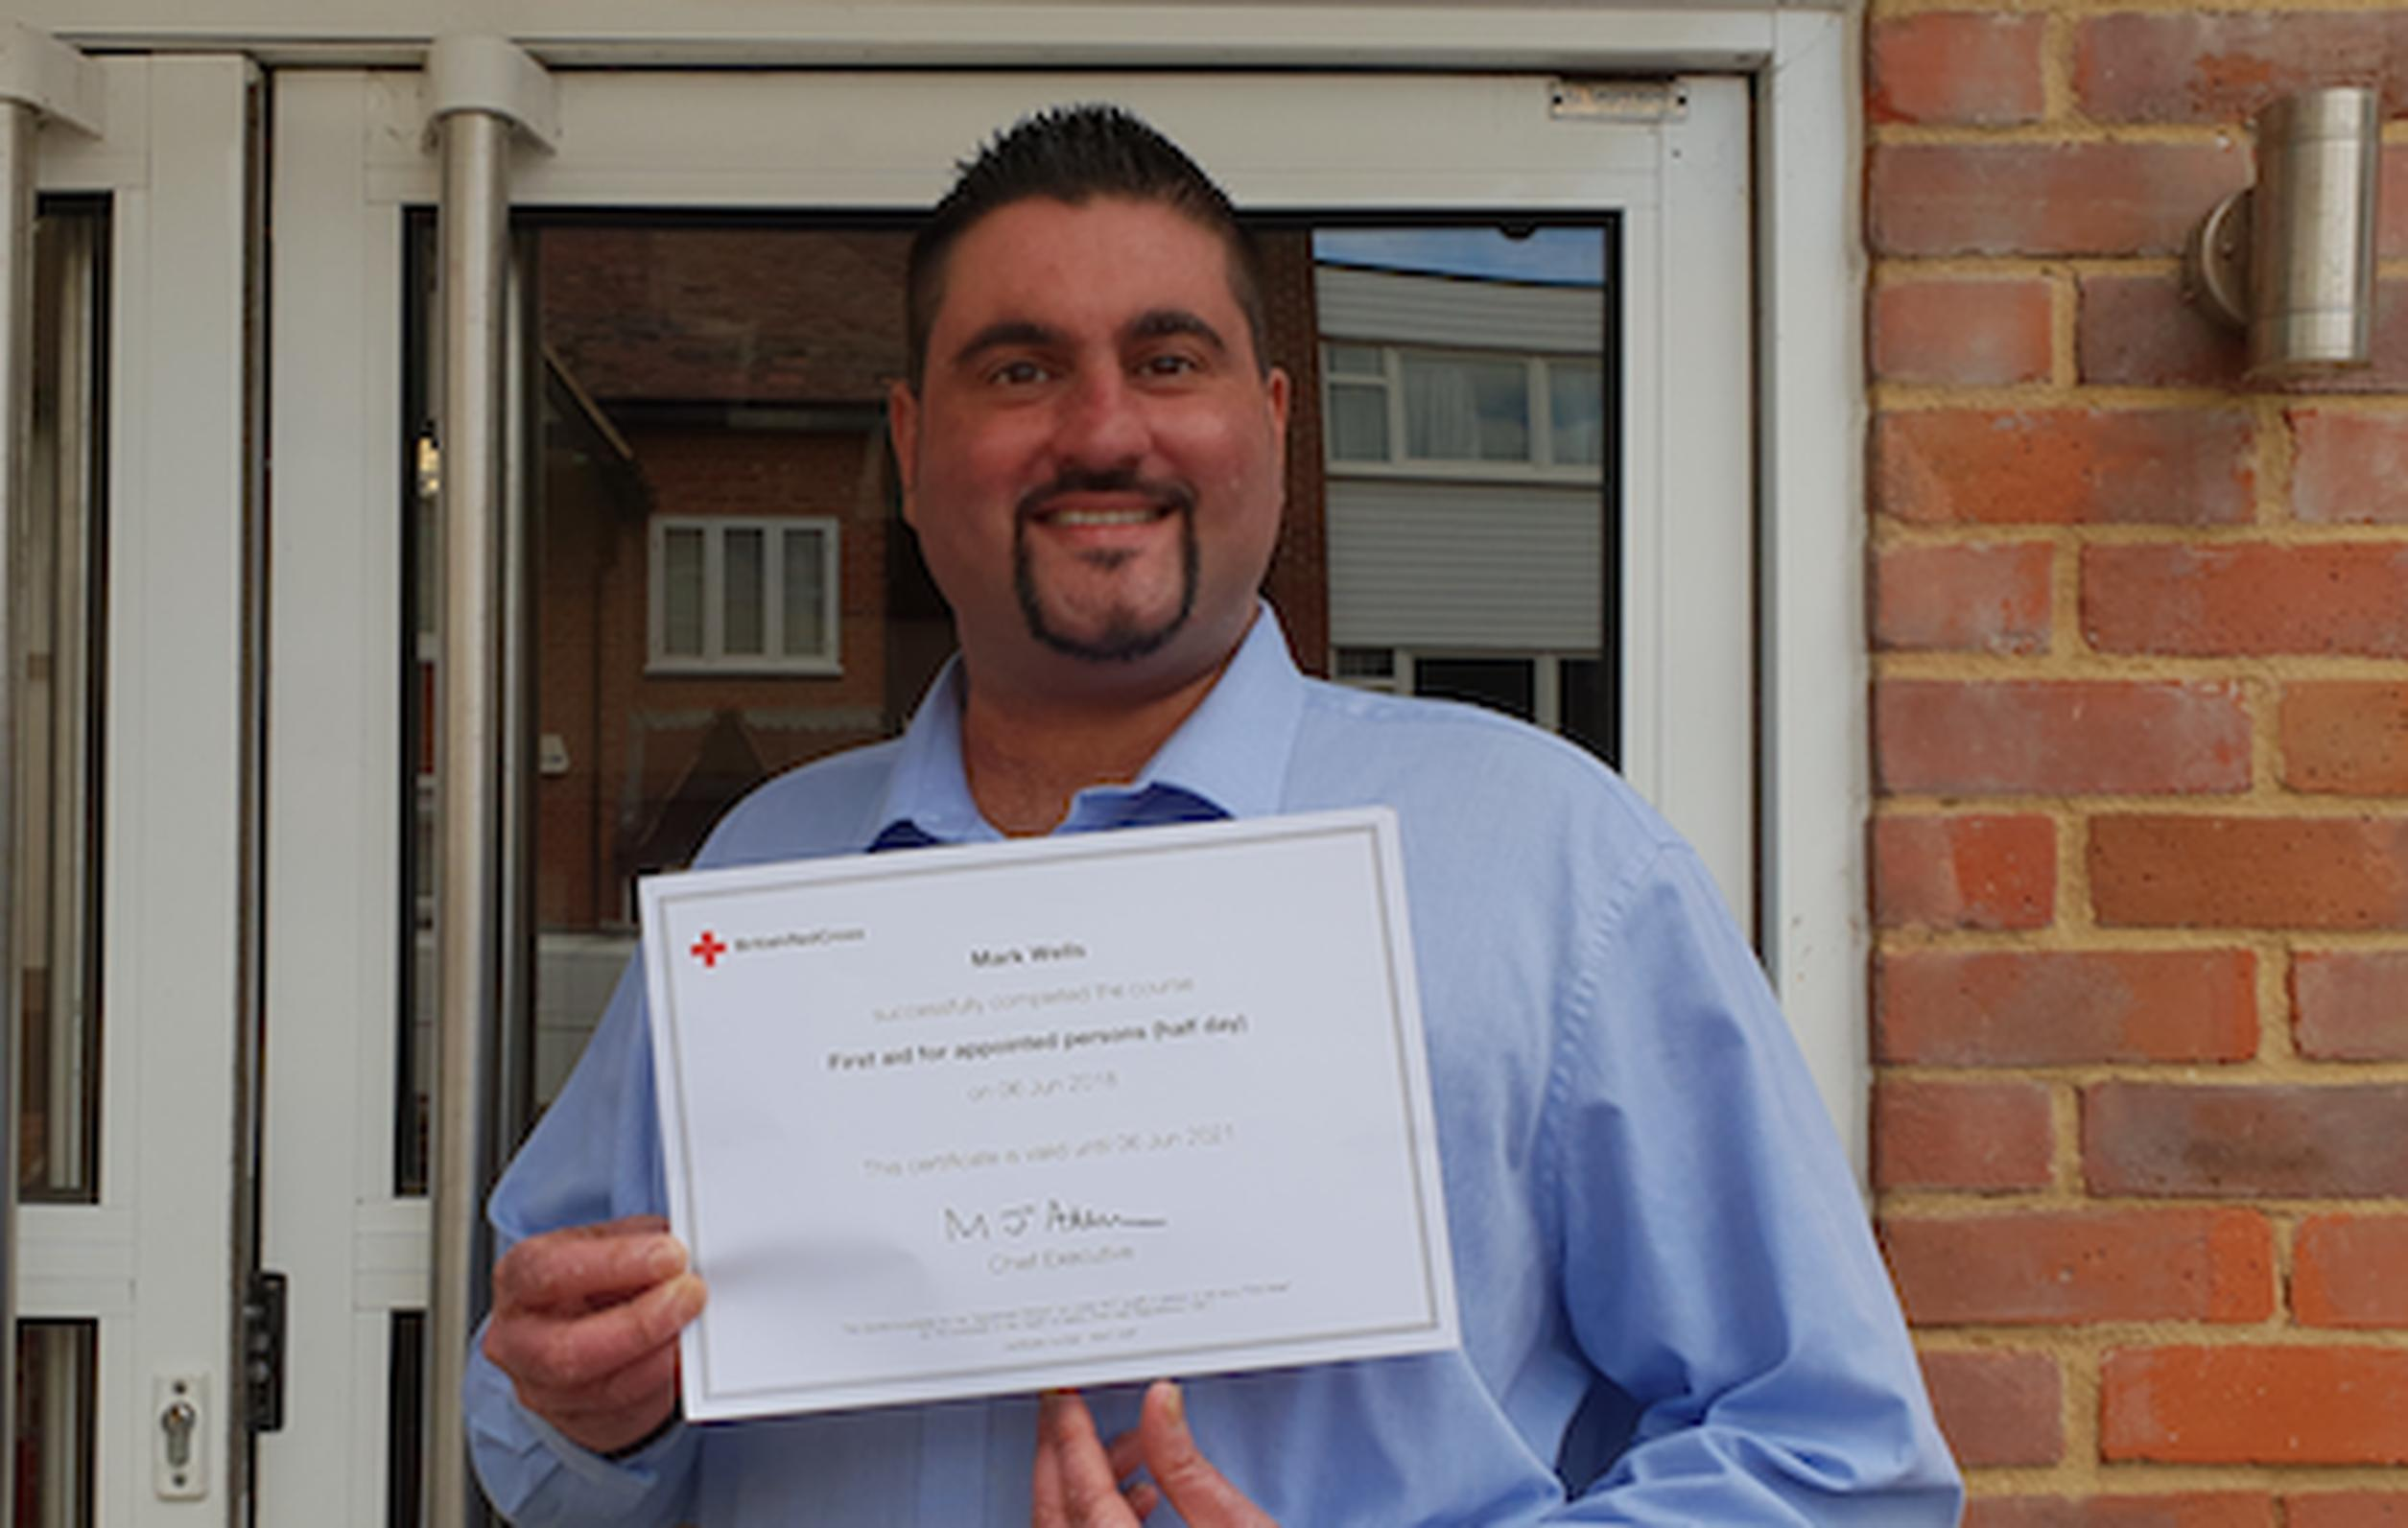 Gemini manager Mark Wells with his First Aid certificate